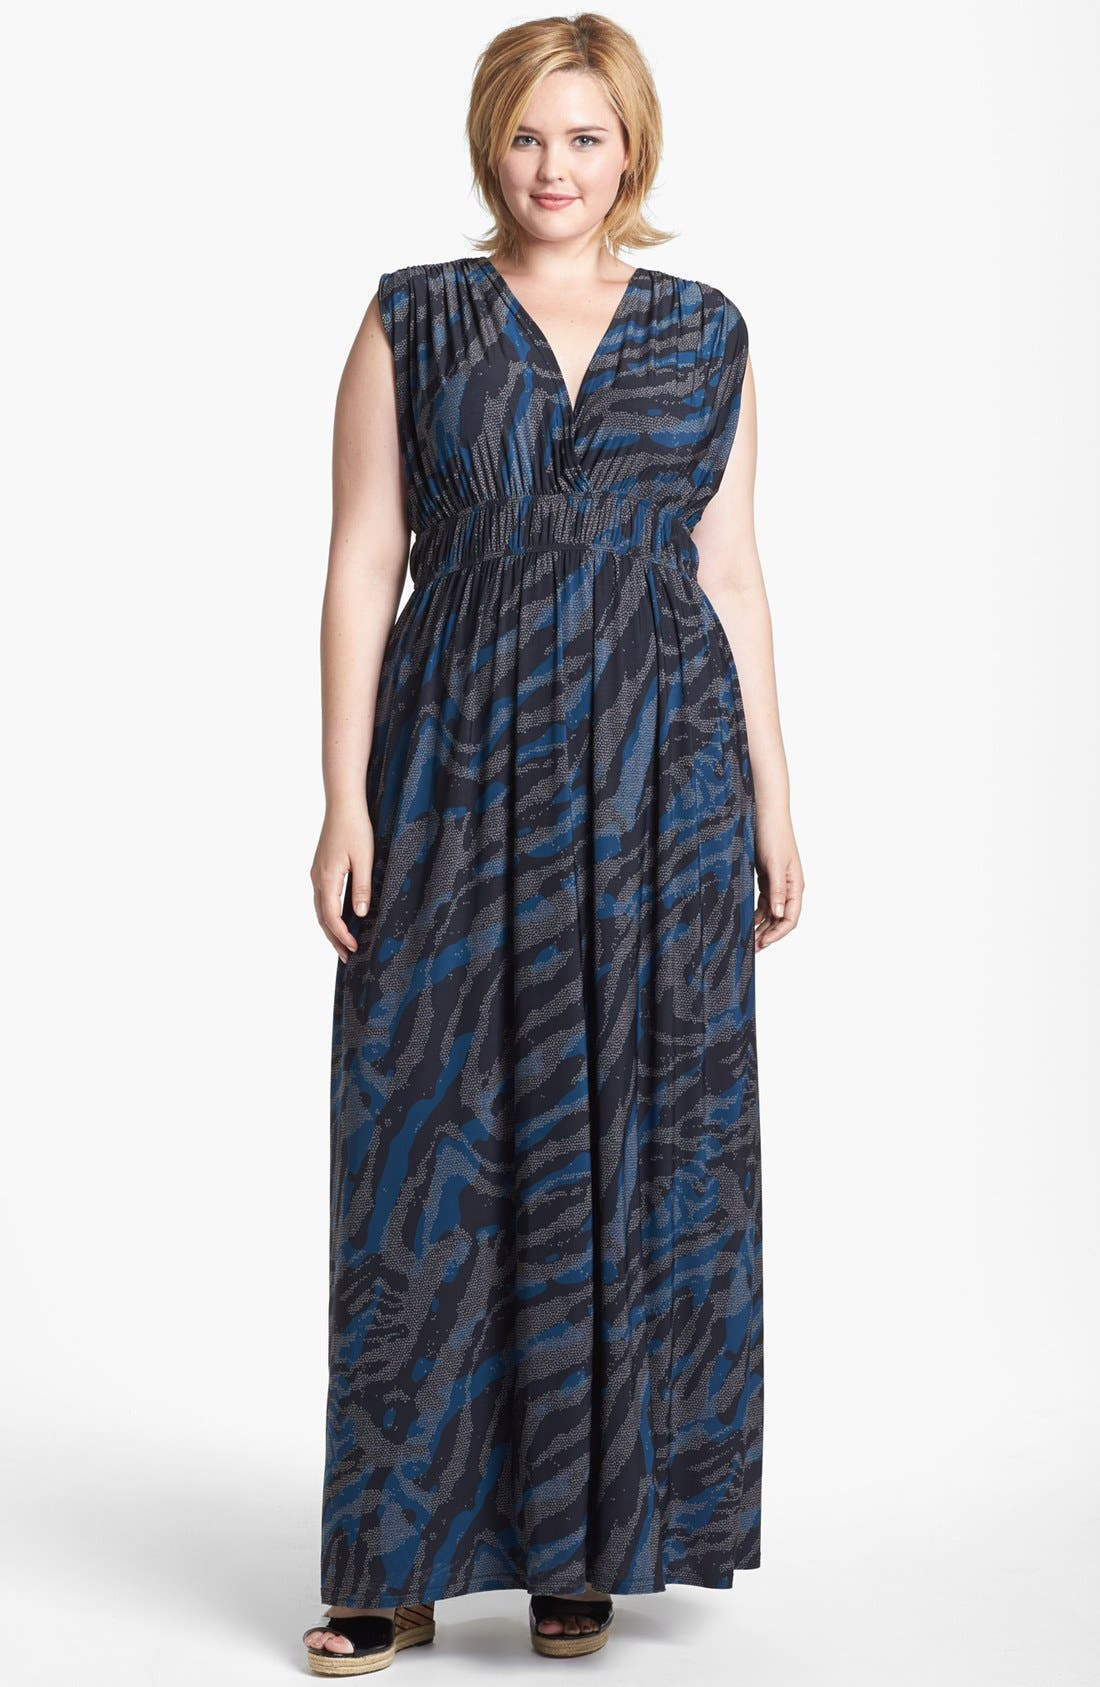 Alternate Image 1 Selected - Viereck 'Rochelle' Matte Jersey Maxi Dress (Plus Size)